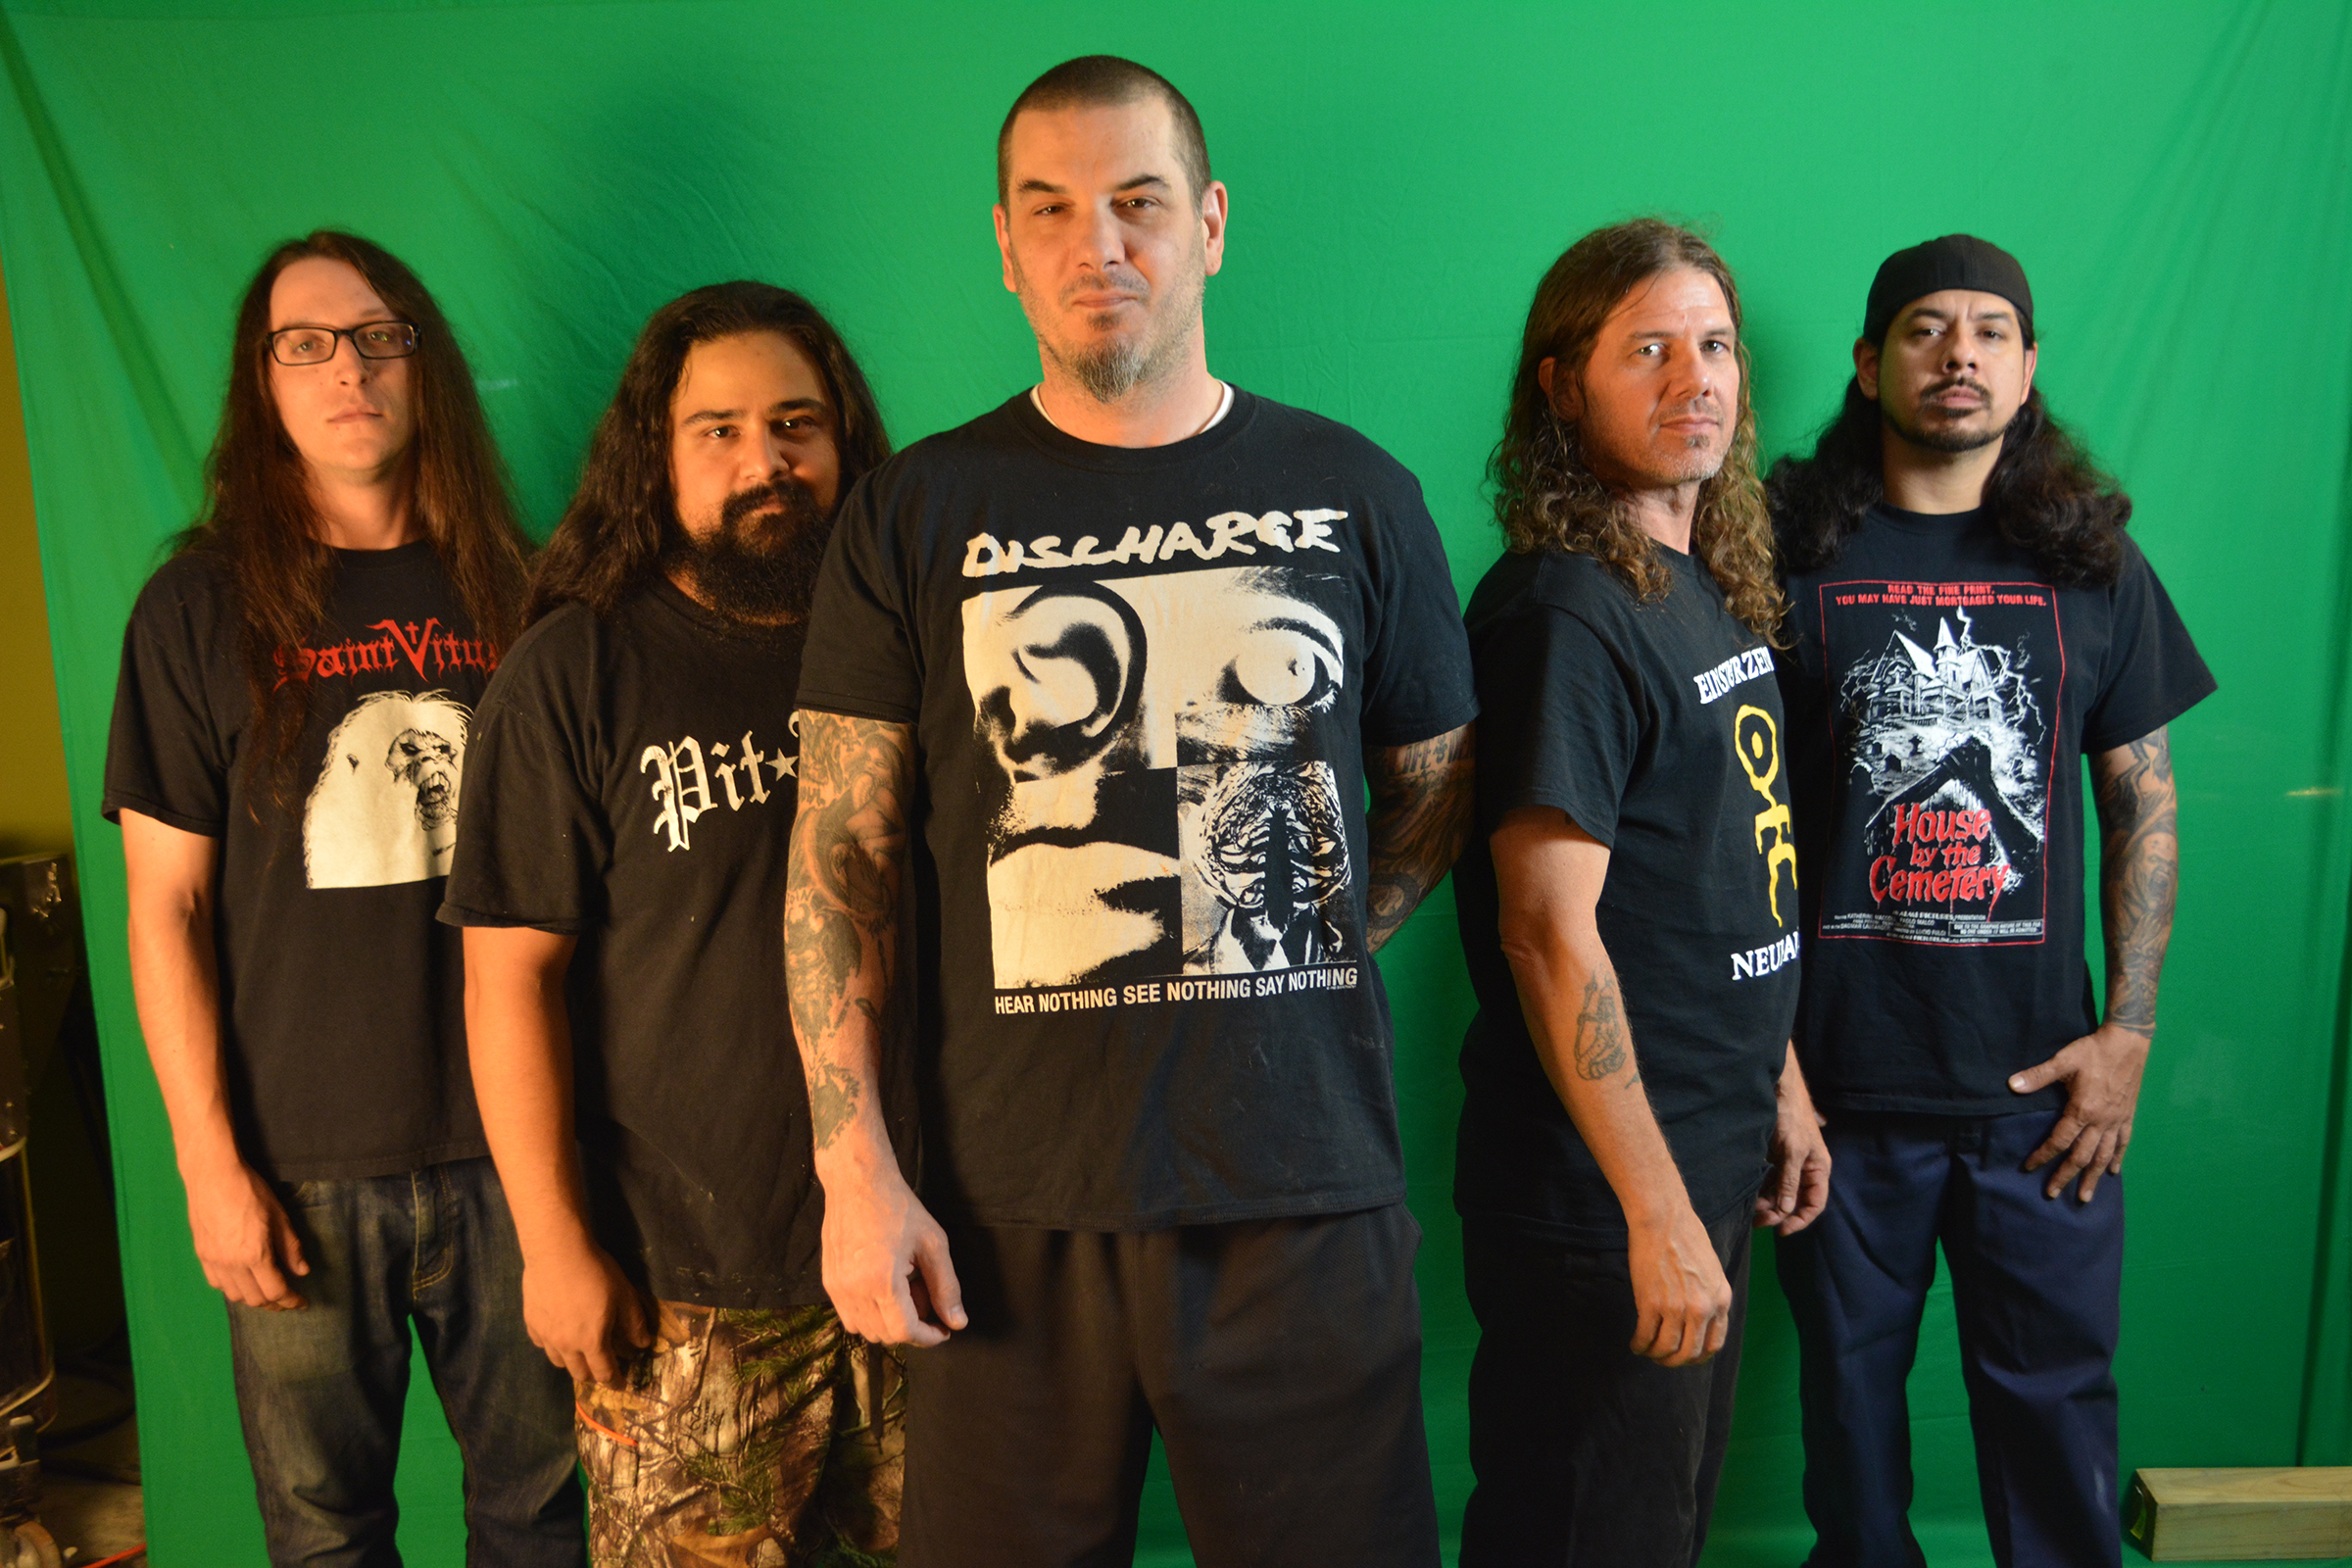 Philip H. Anselmo & The Illegals Announces New Album Choosing Mental Illness As A Virtue for January 2018 Release